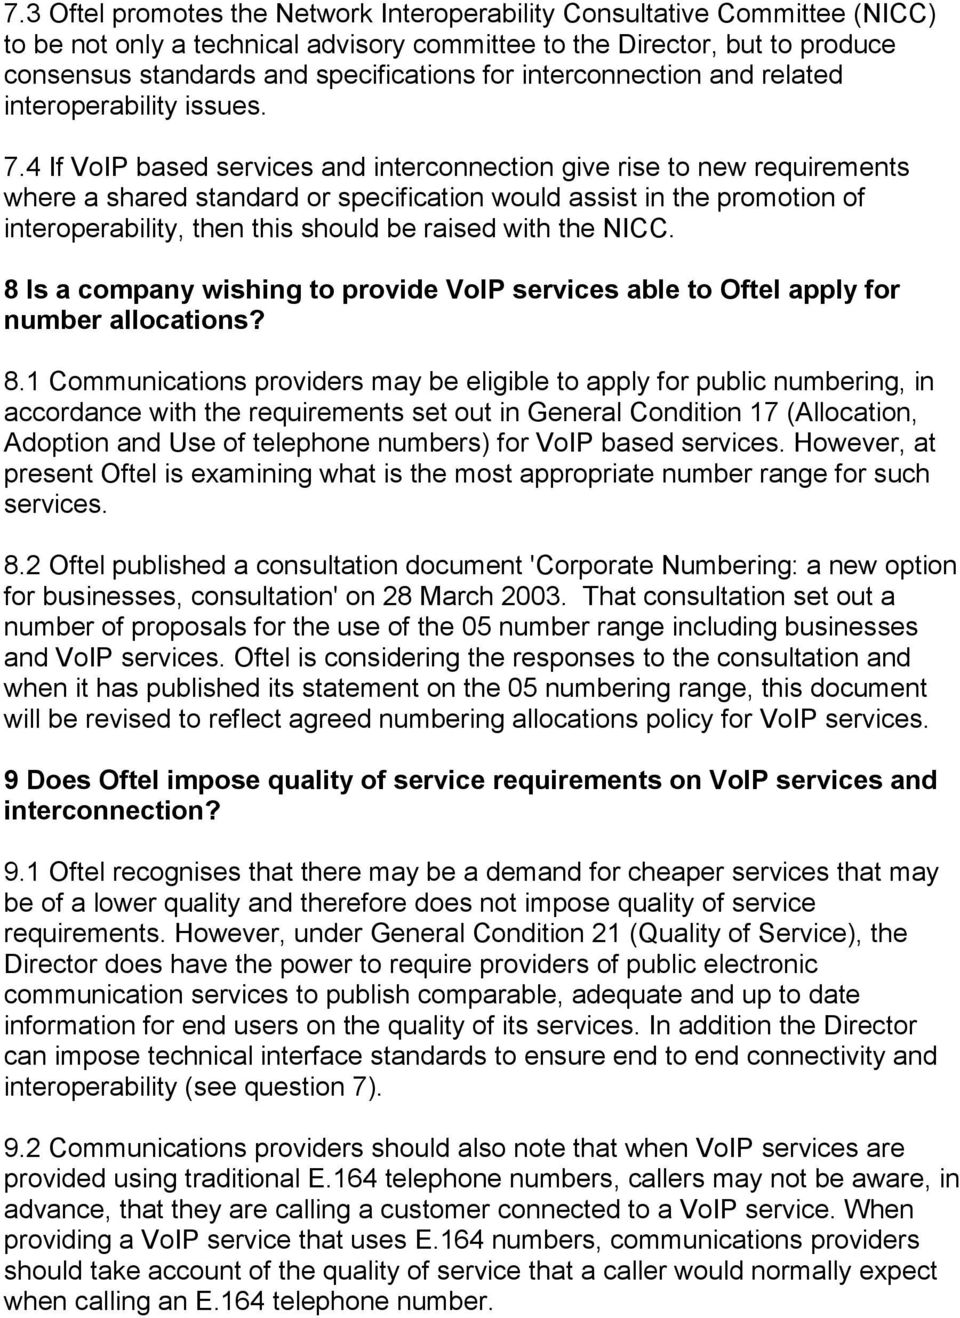 4 If VoIP based services and interconnection give rise to new requirements where a shared standard or specification would assist in the promotion of interoperability, then this should be raised with